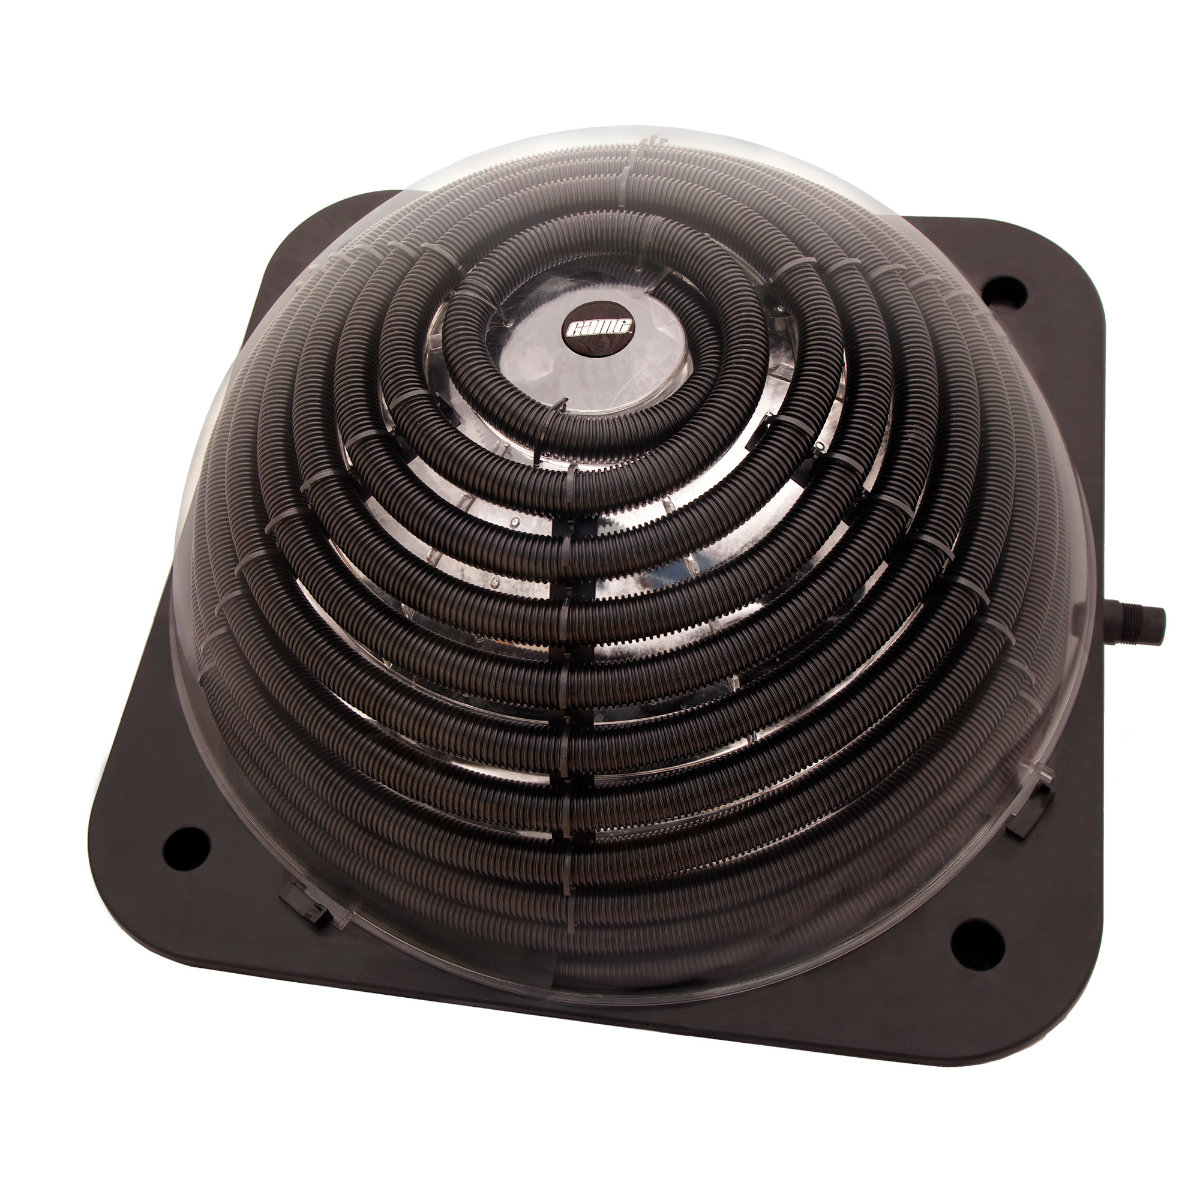 bestway pool heater instructions